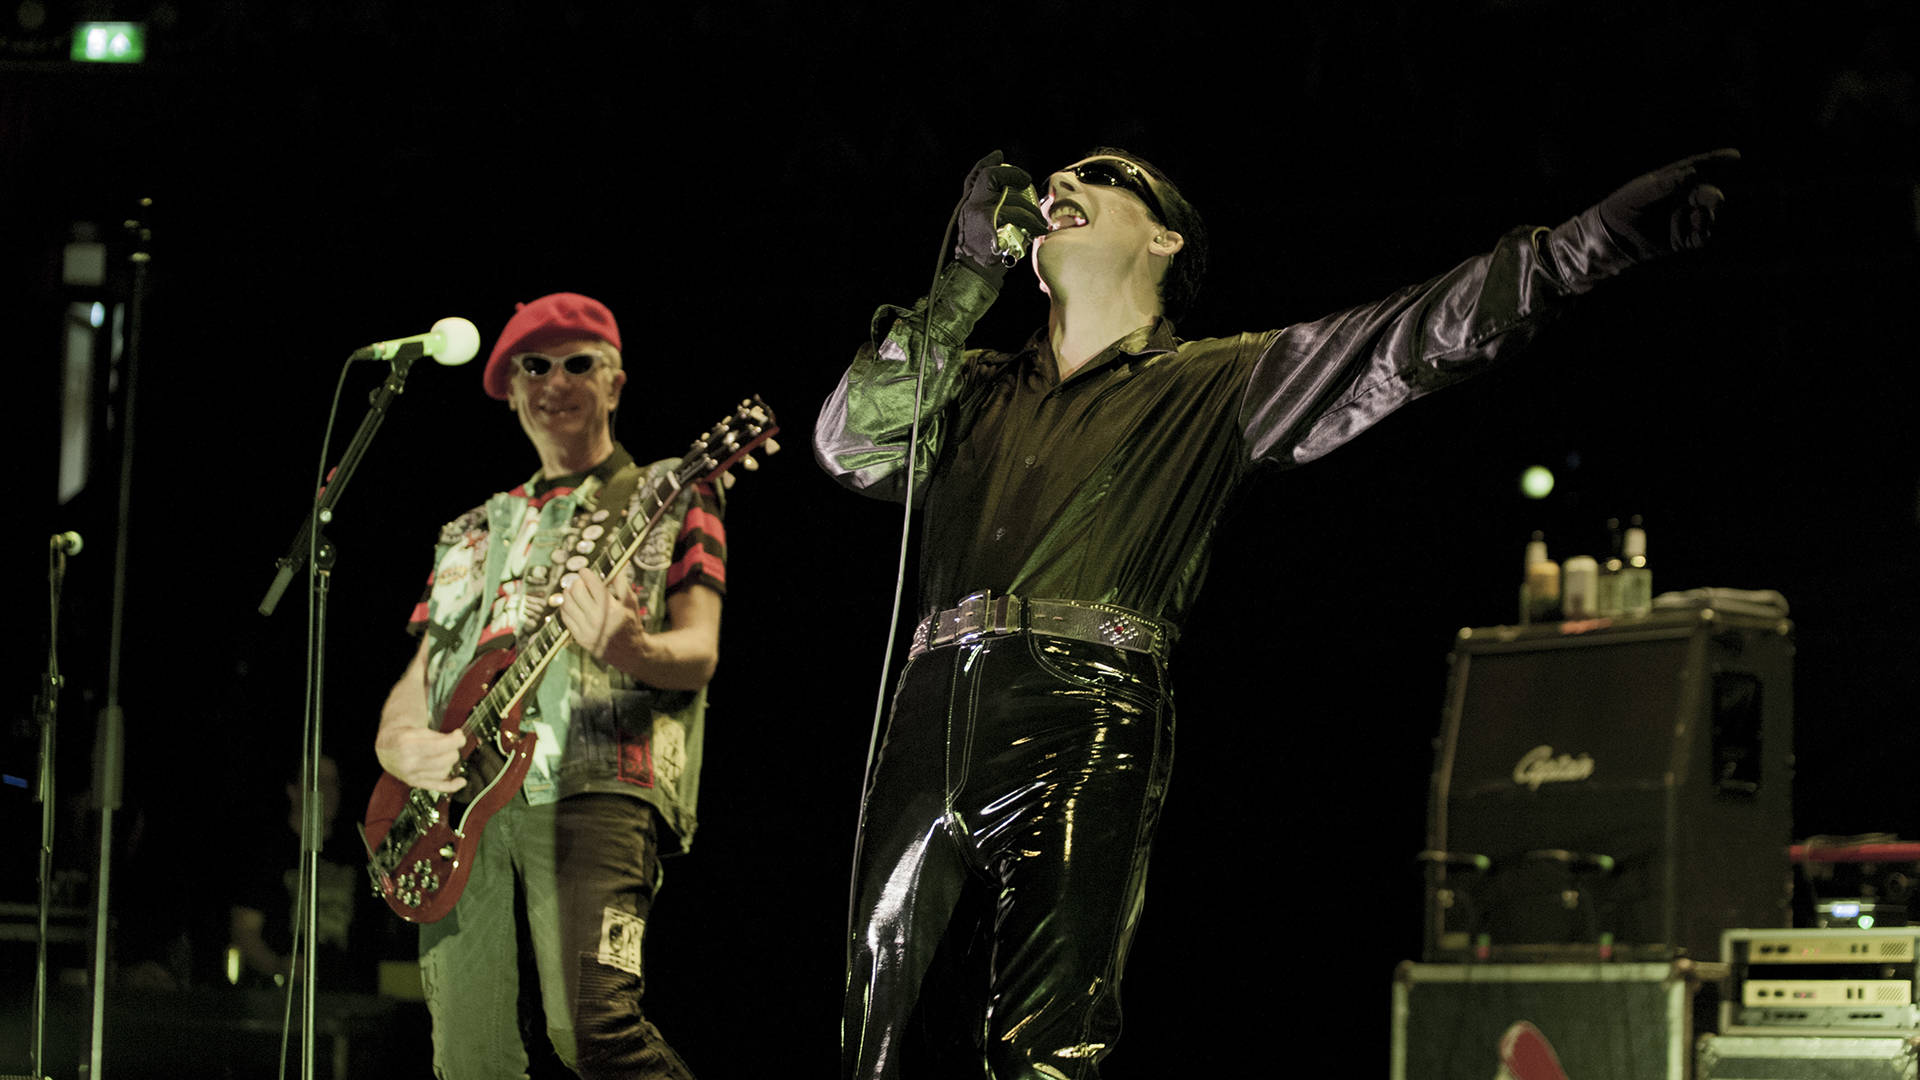 The Damned playing their 40th Anniversary show at Royal Albert Hall in 2016 Photo: Dod Morrison